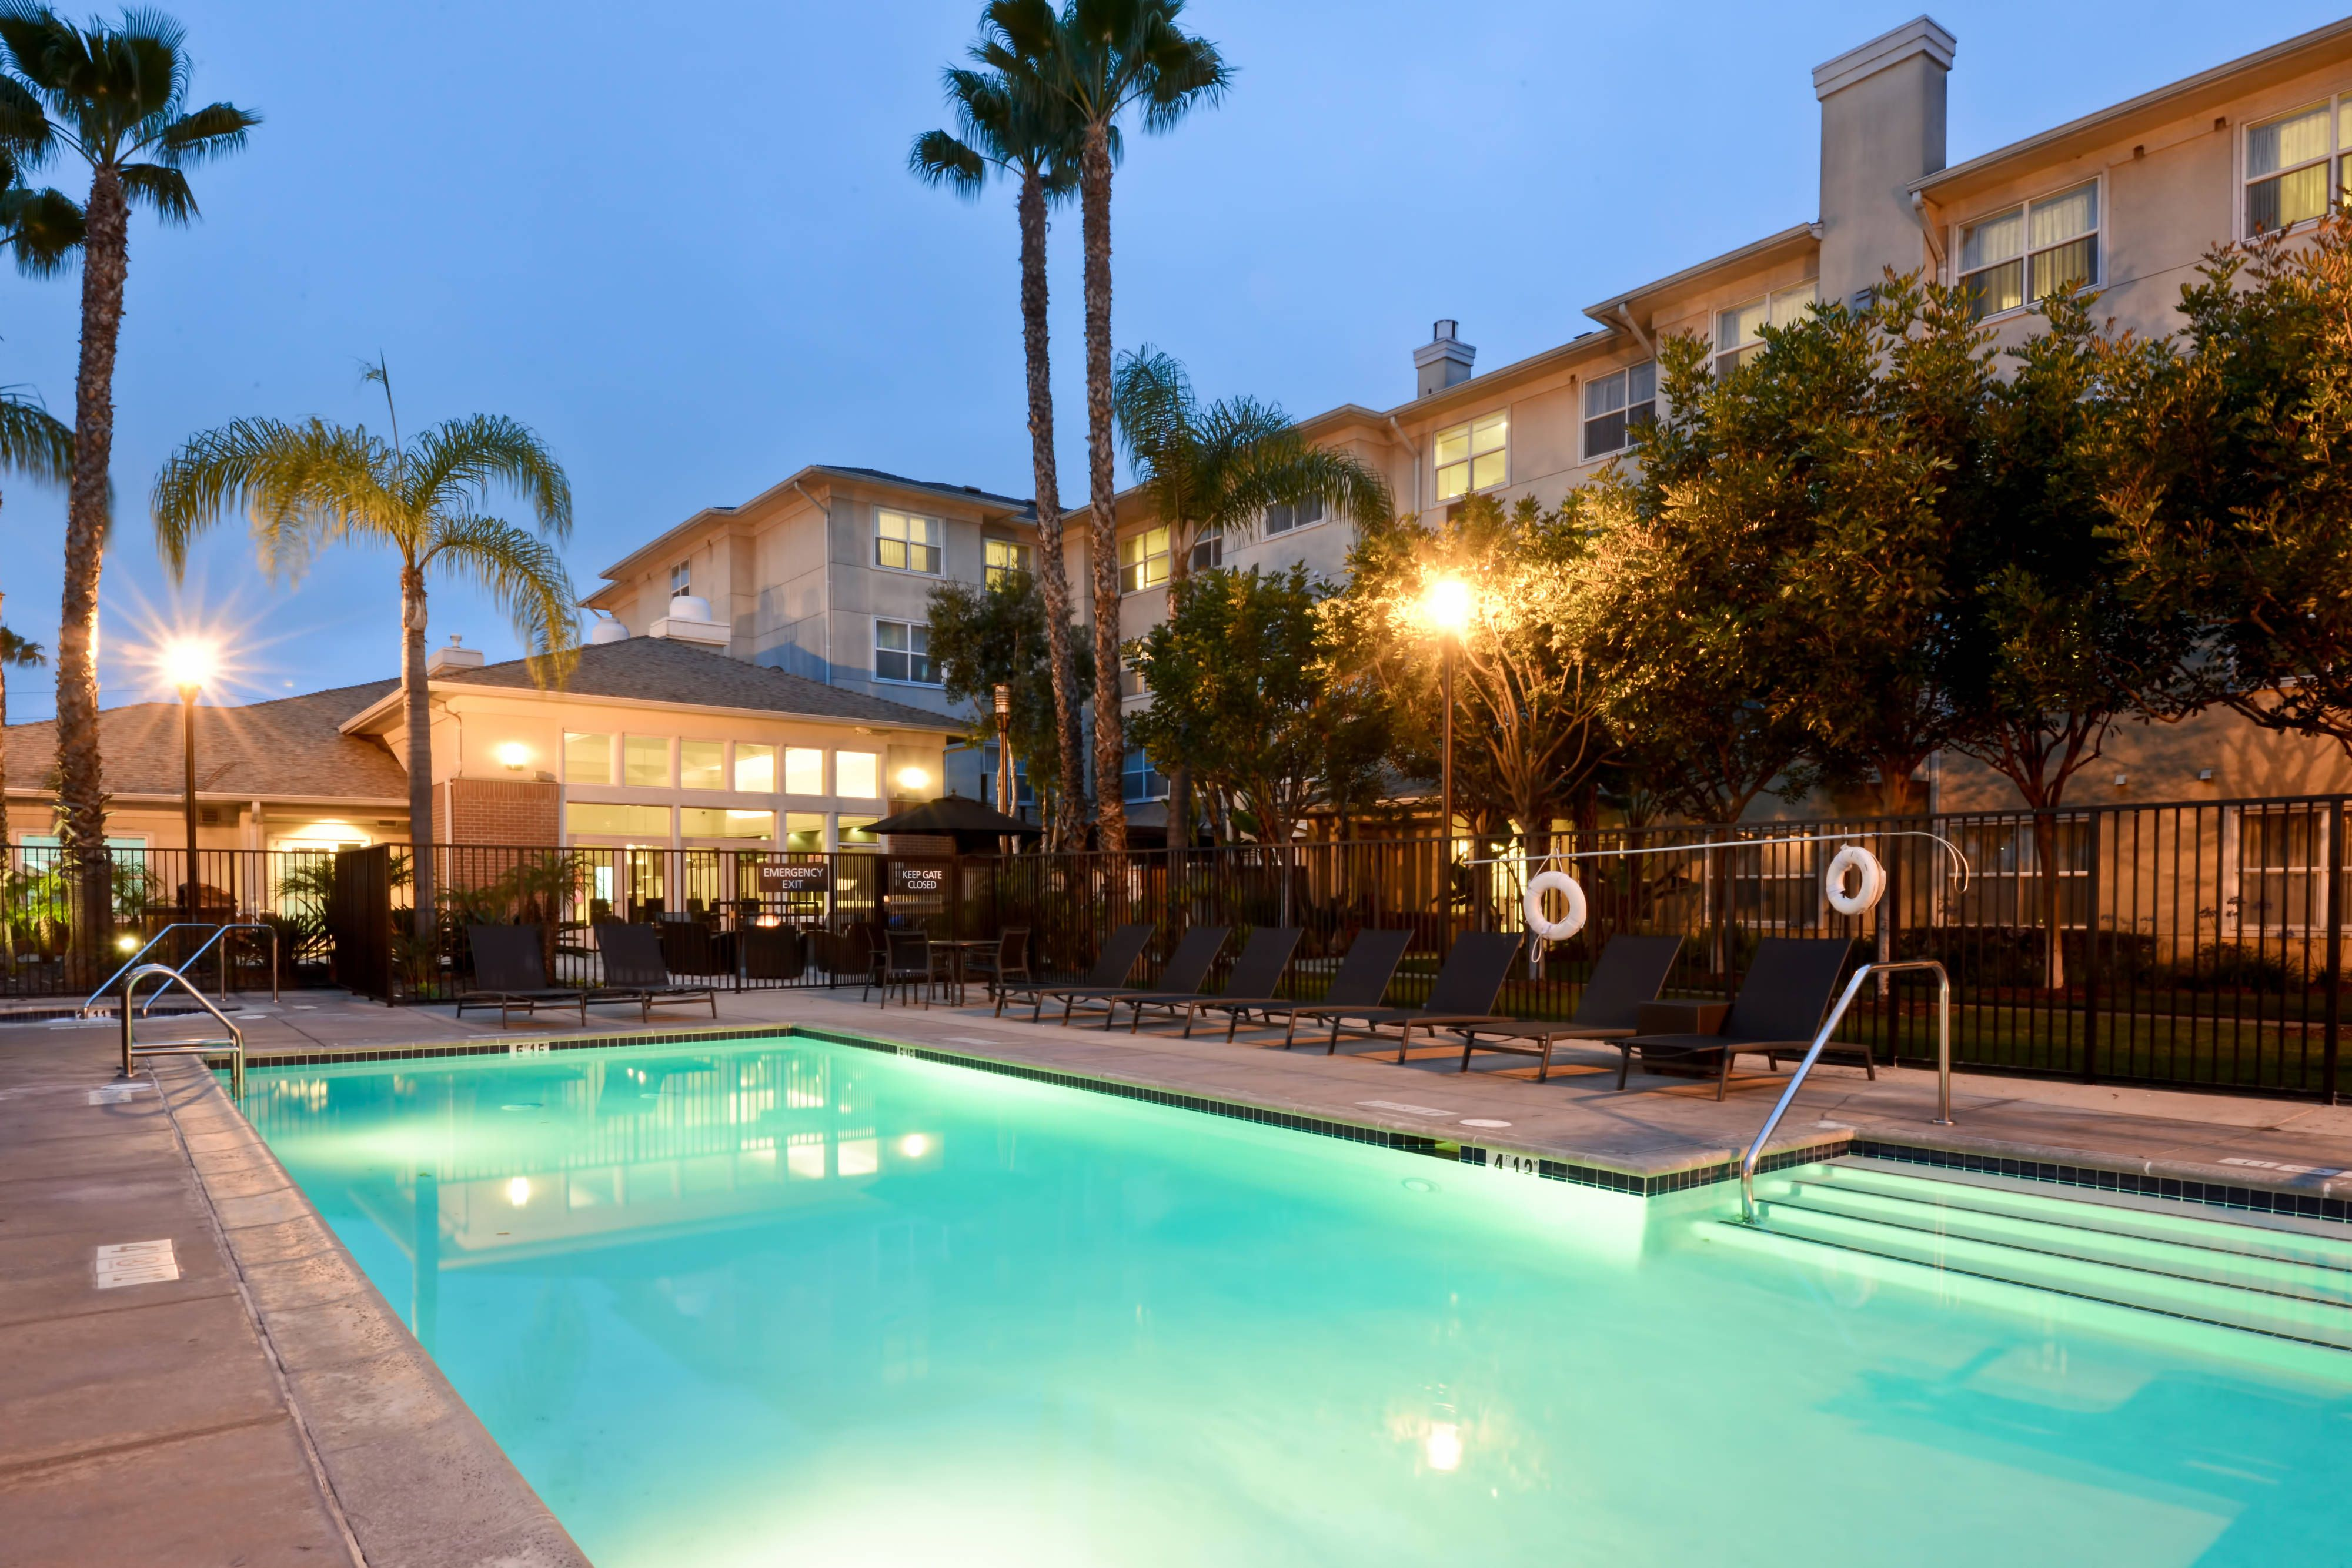 Residence Inn Los Angeles Lax El Segundo Outdoor Pool Comfort Rooms Holiday Vacation Books Corporate Apartments Vacation Rental